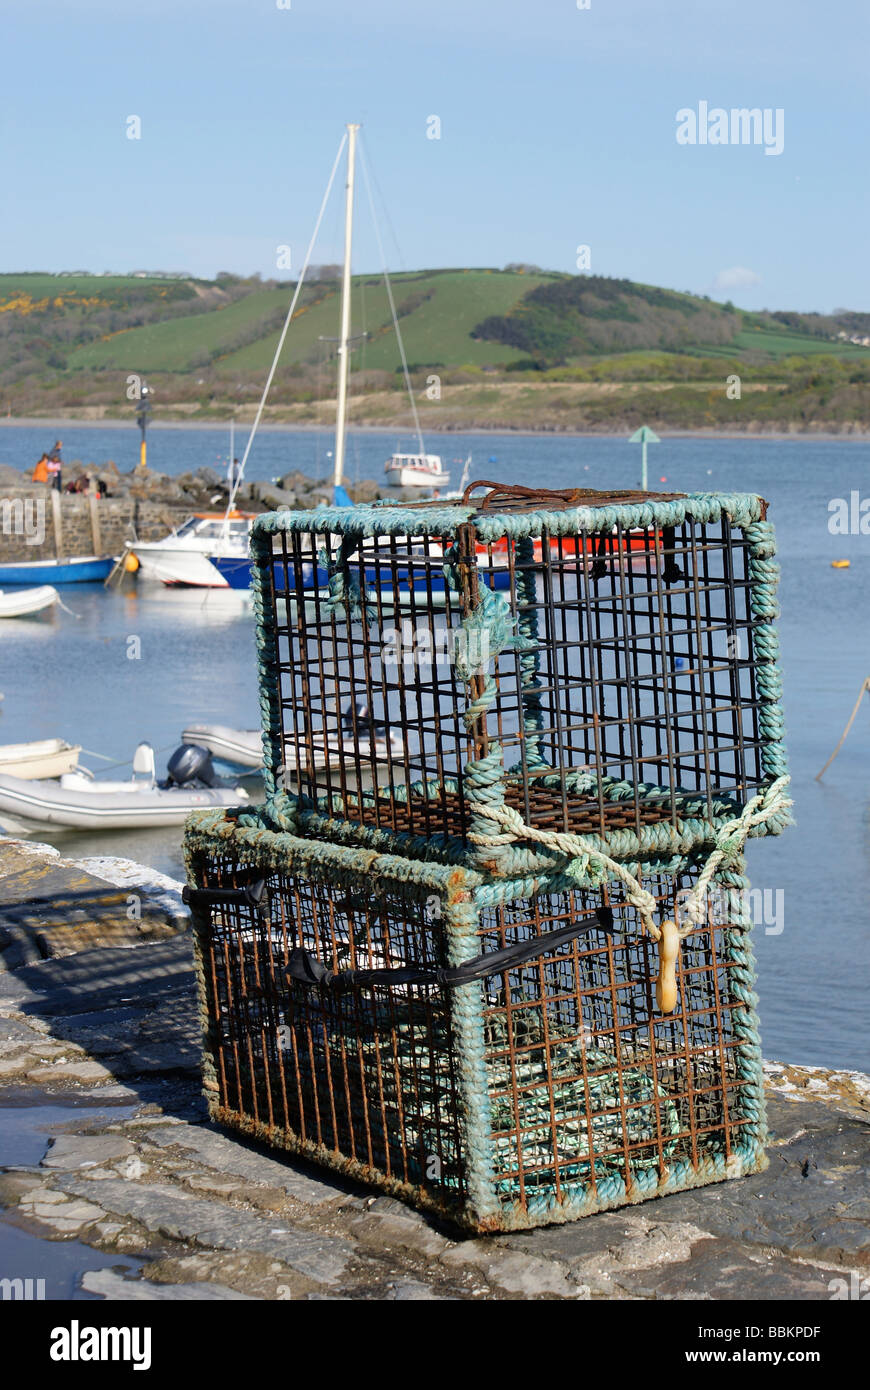 Lobster Cages at the Quayside, New Quay Harbour, Cardigan Bay, West Wales - Stock Image